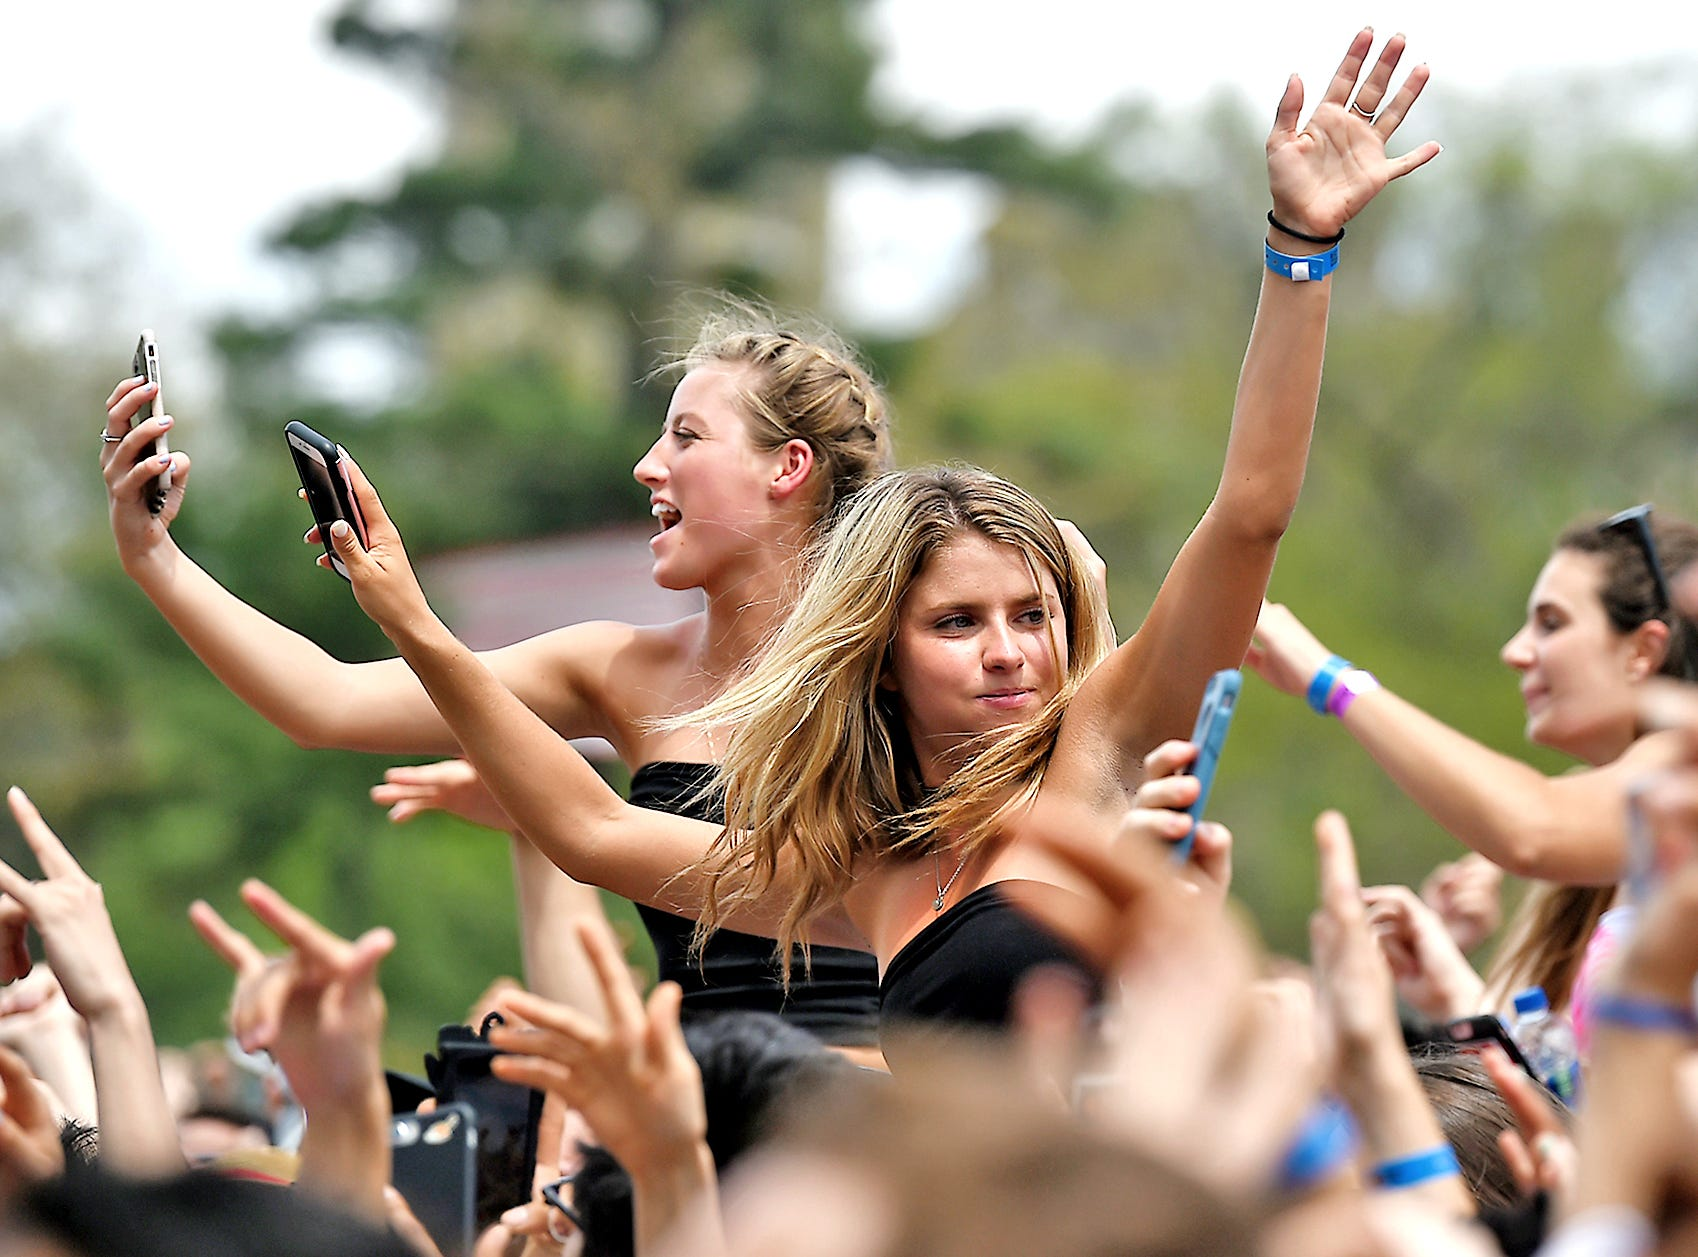 Cornell University students enjoy Slope Day on Thursday, May 10, 2018. A longstanding Cornell tradition which celebrates the end of classes, Slope Day 2018 featured music by Young Bombs, Dreezy and Galantis.